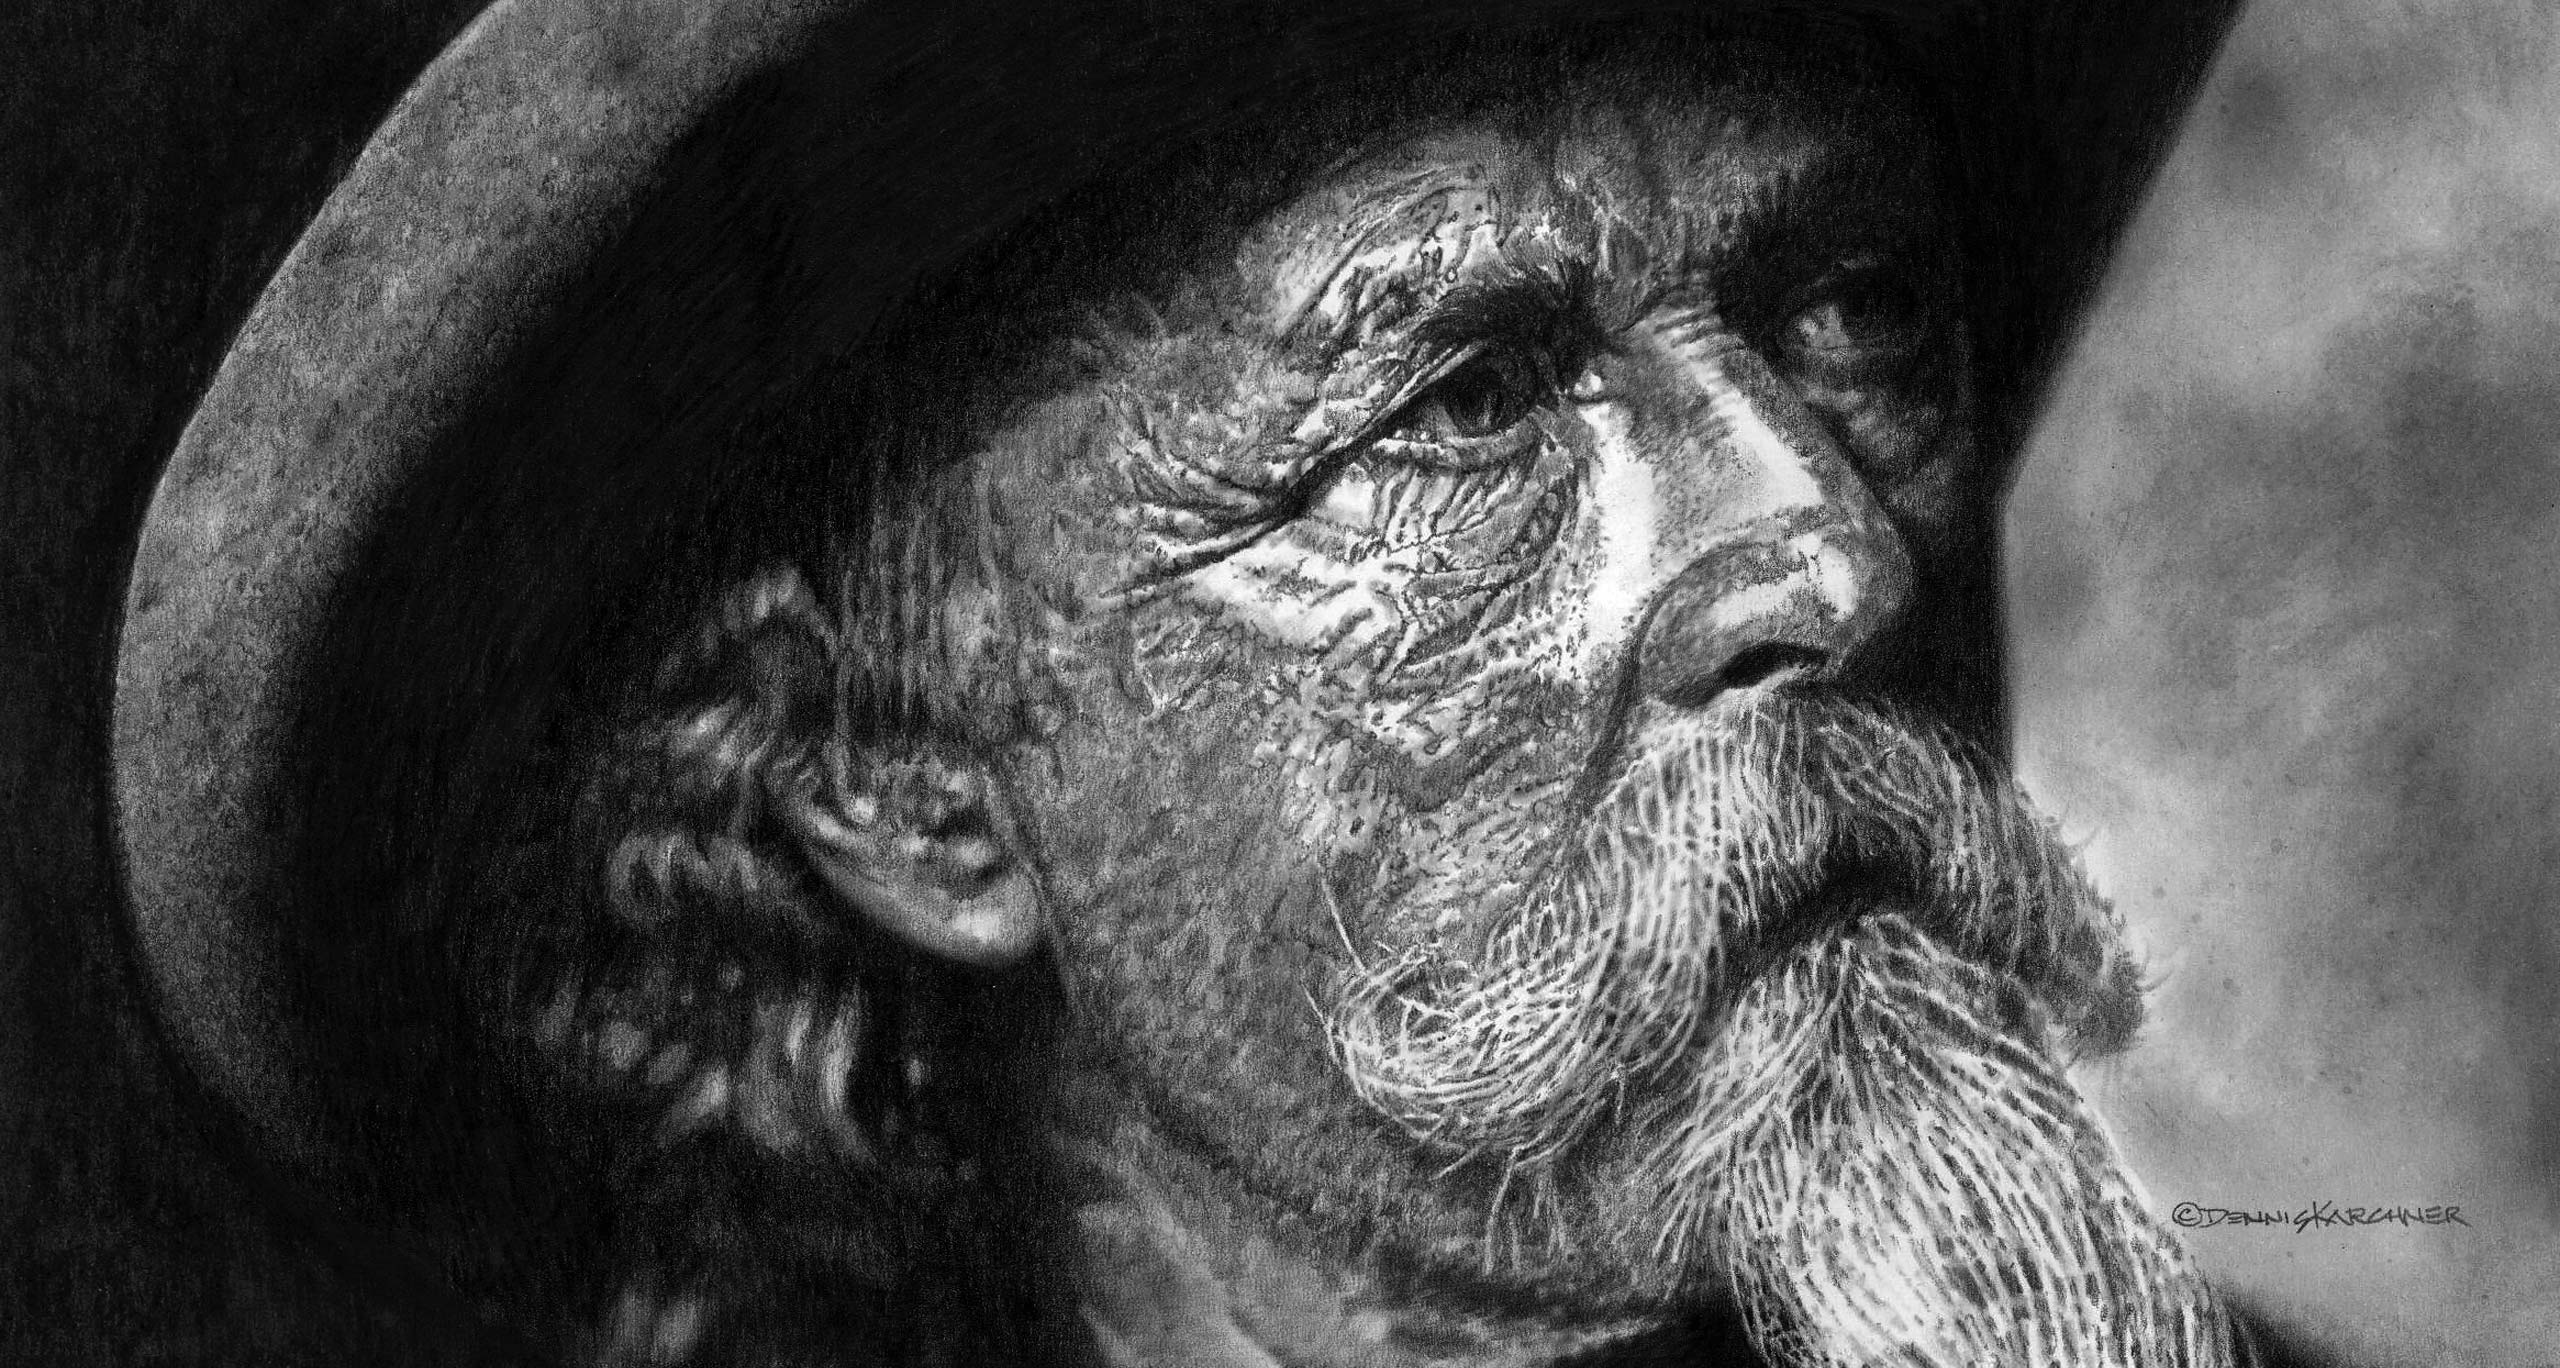 Western Art Pencil Illustrations